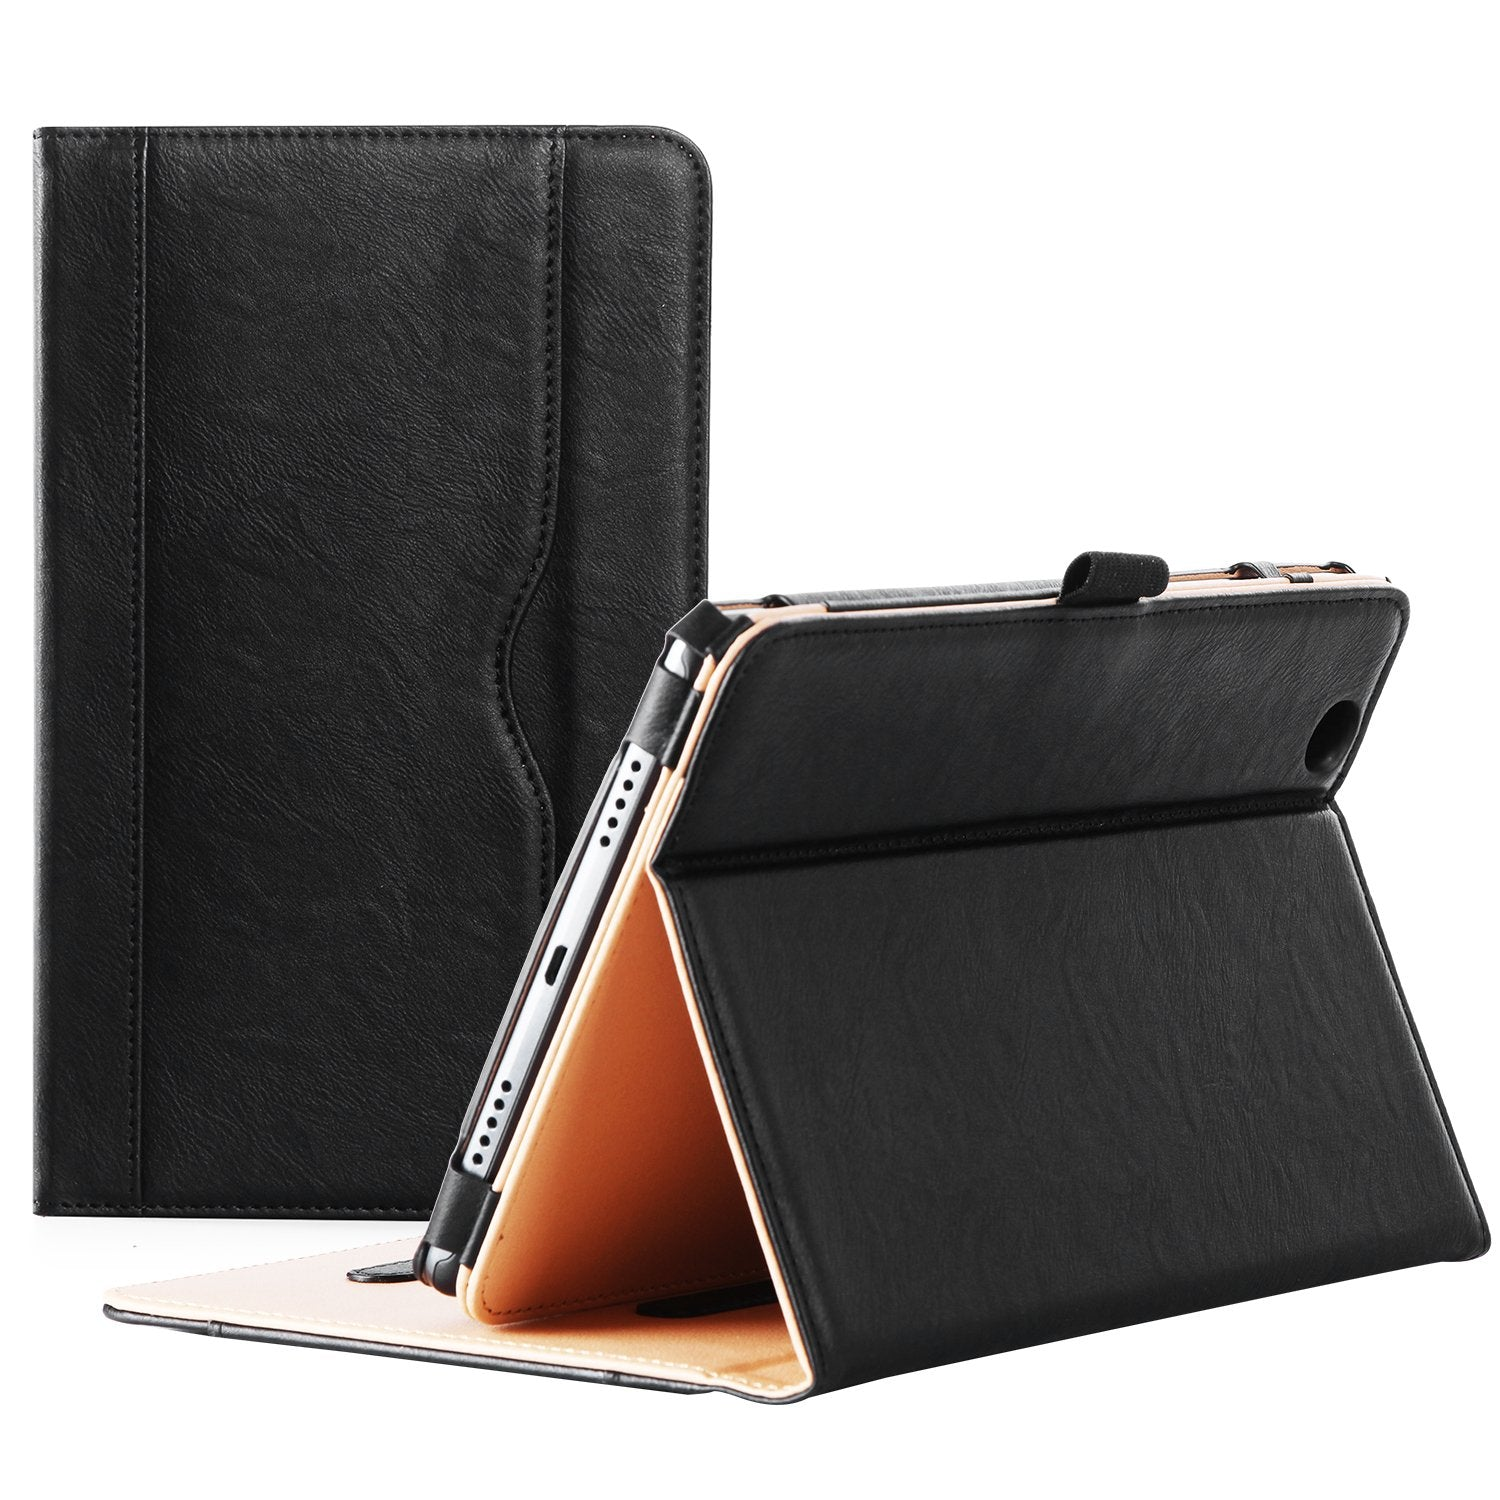 LG G Pad X 8.0 V525 Pad III 8.0 Leather Folio Case | ProCase